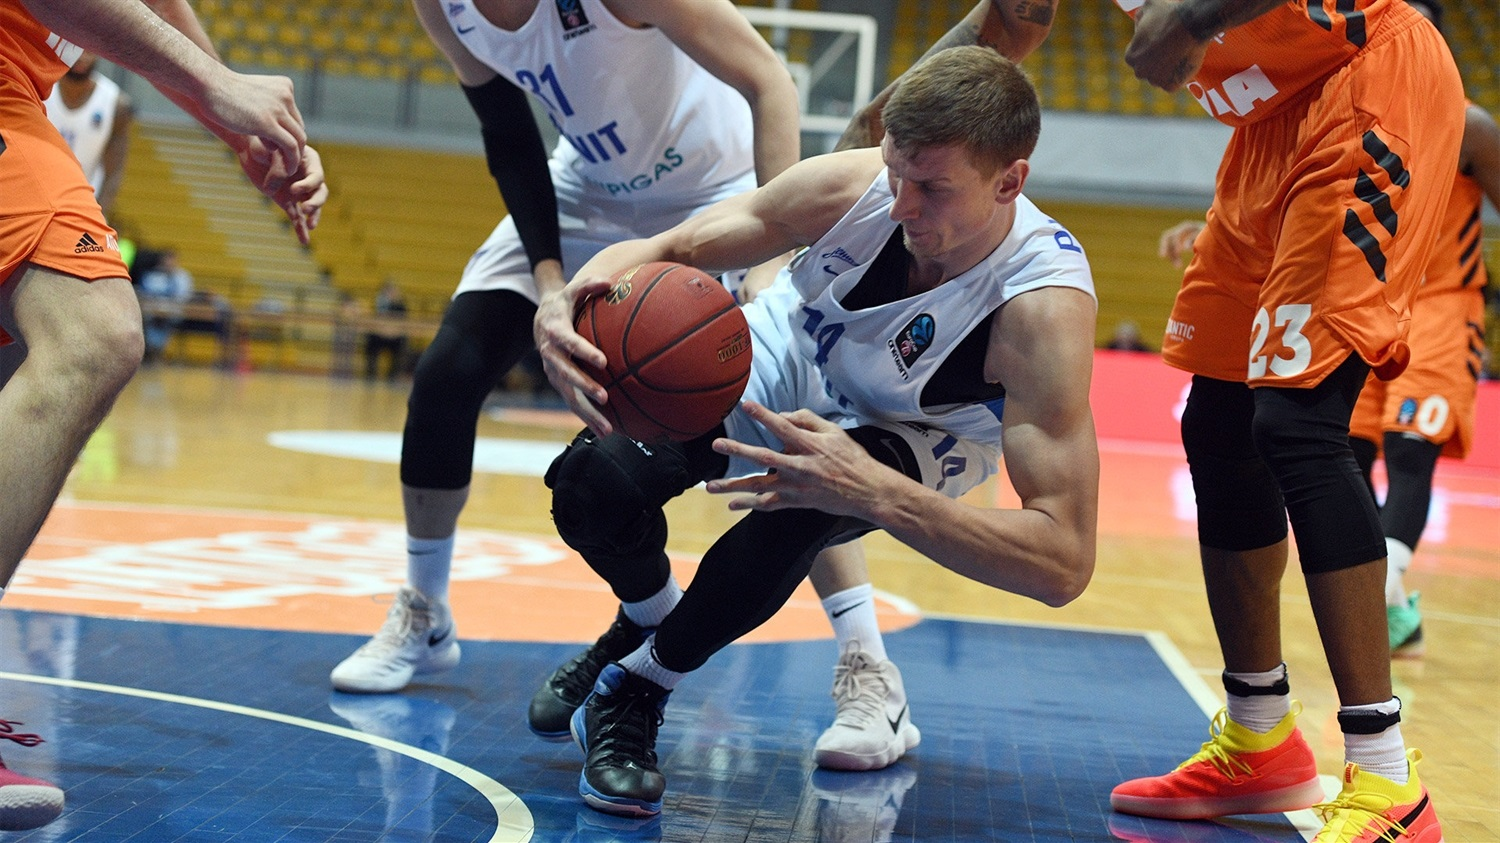 Anton Pushkov - Zenit St Petersburg (photo Cedevita) - EC18